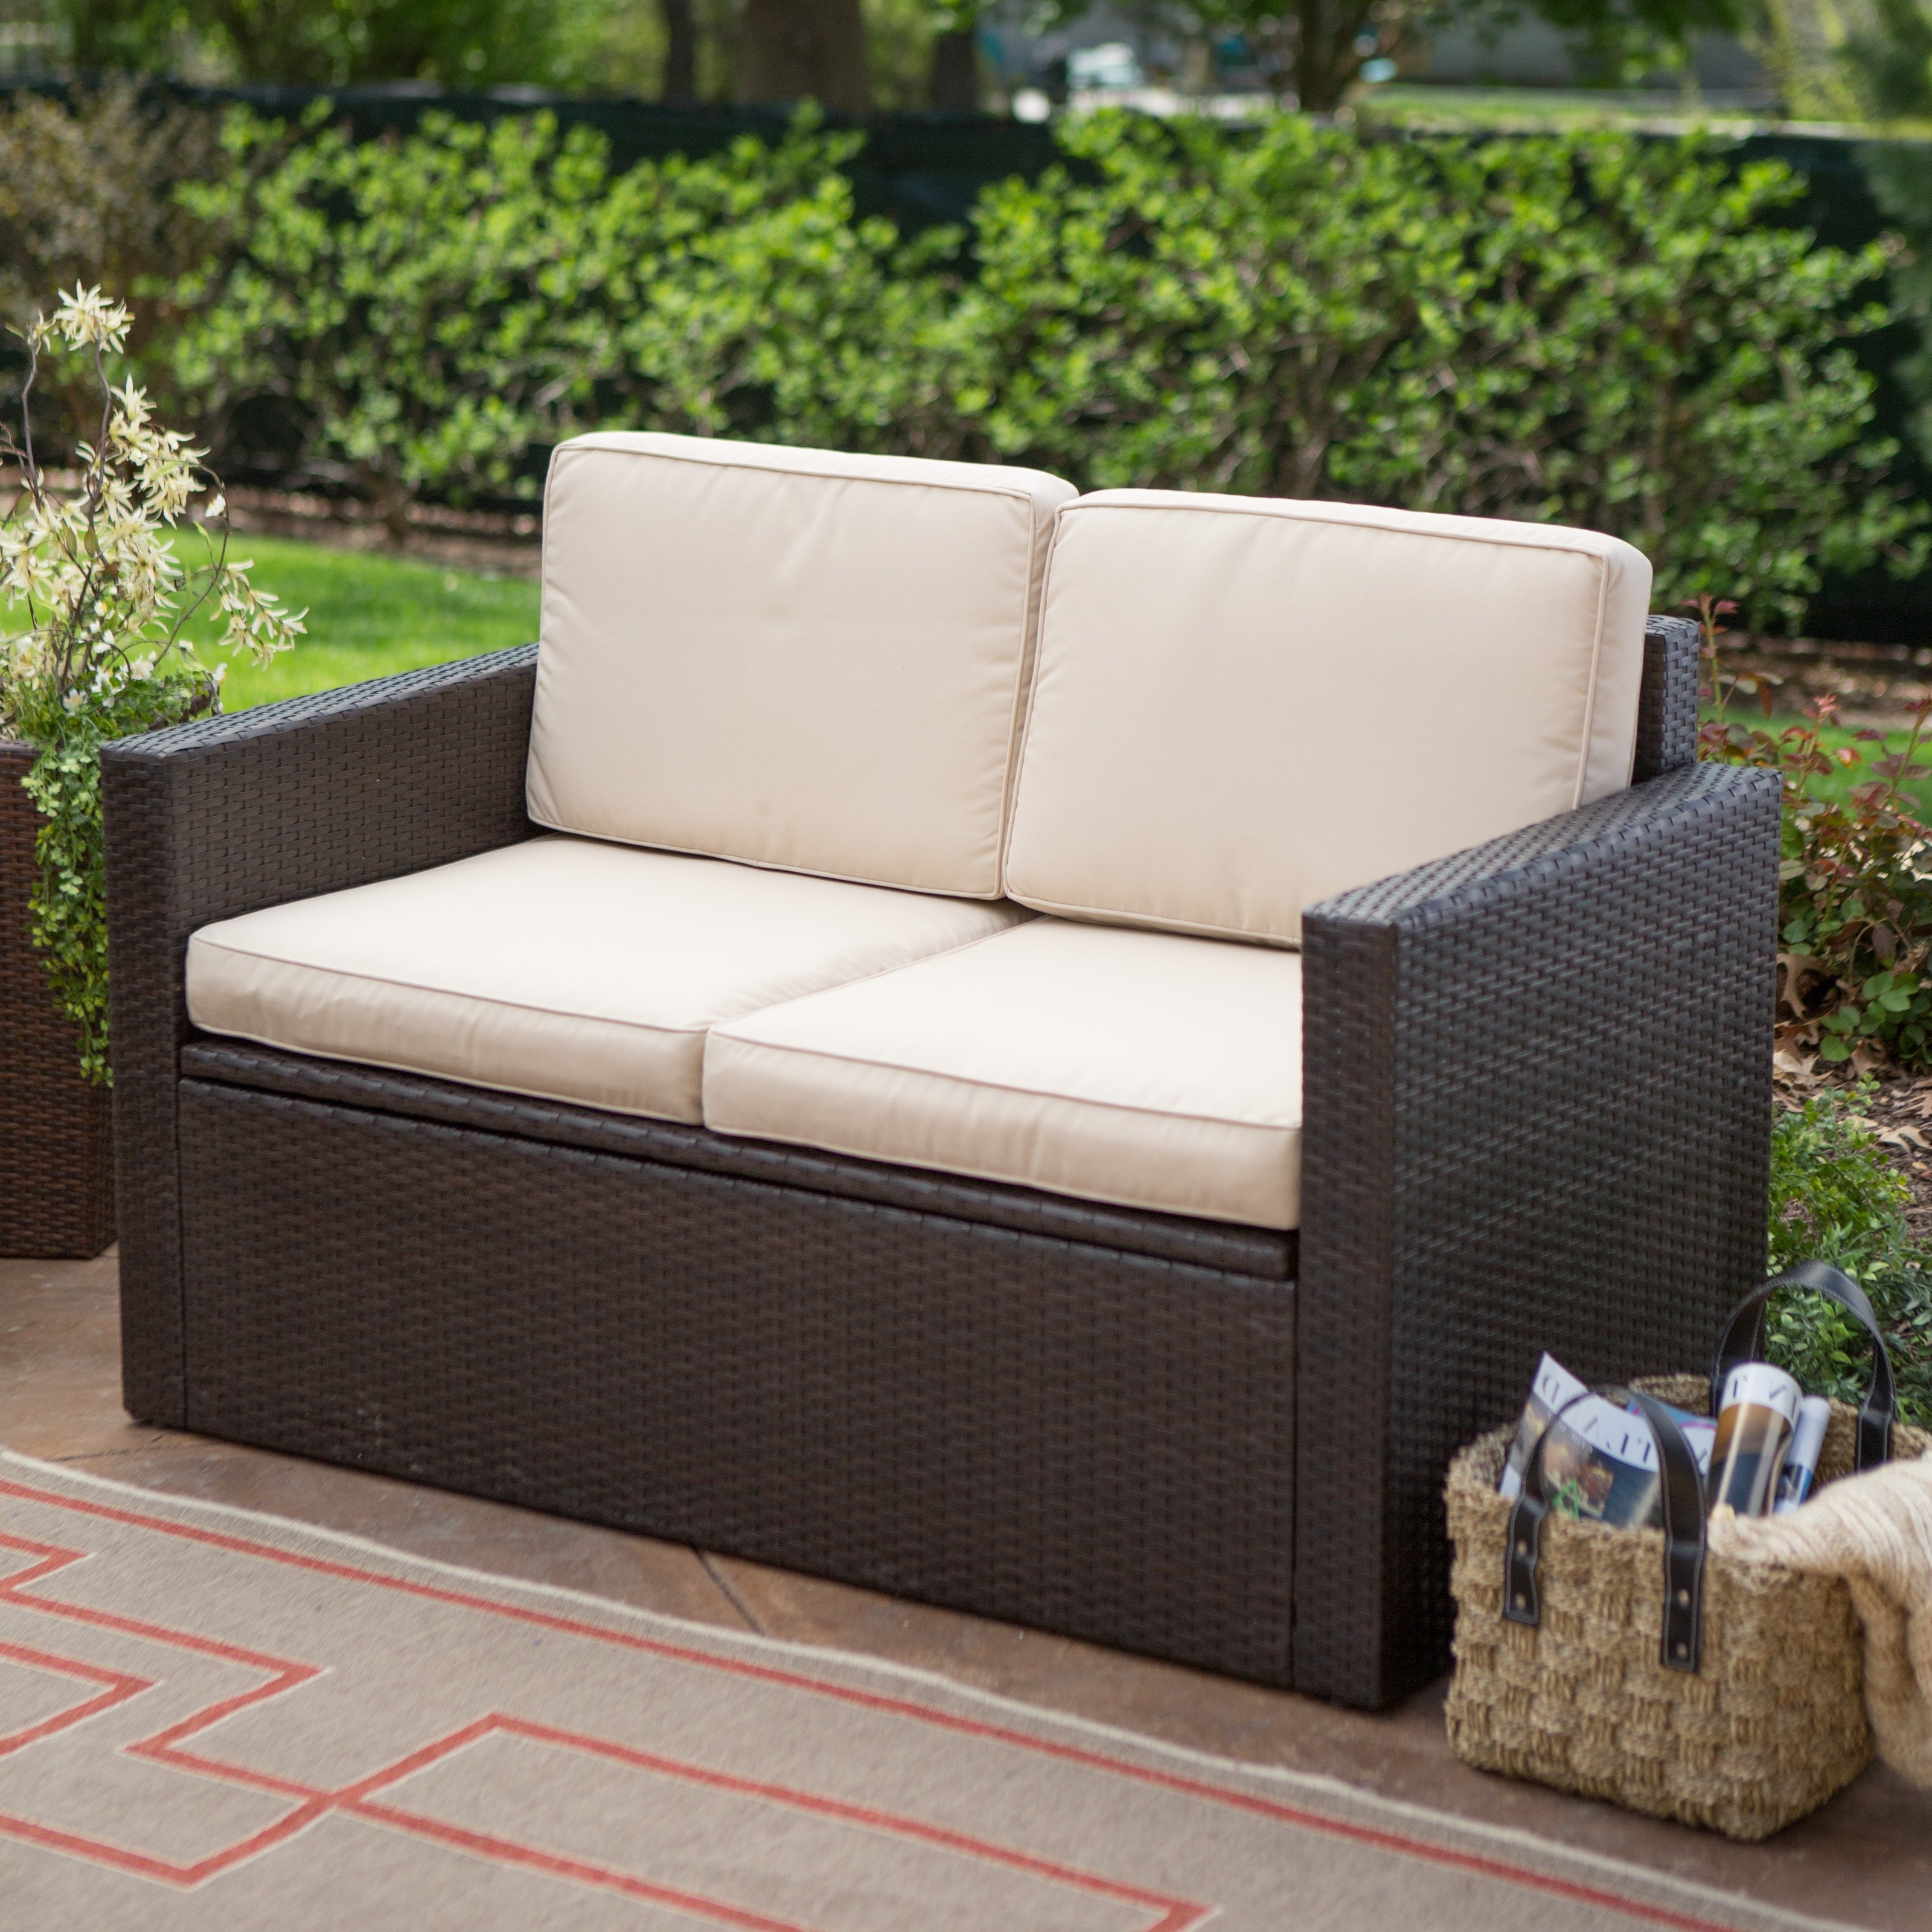 Patio Sofas Pertaining To Trendy Coral Coast Berea Outdoor Wicker Storage Loveseat With Cushions (View 12 of 15)